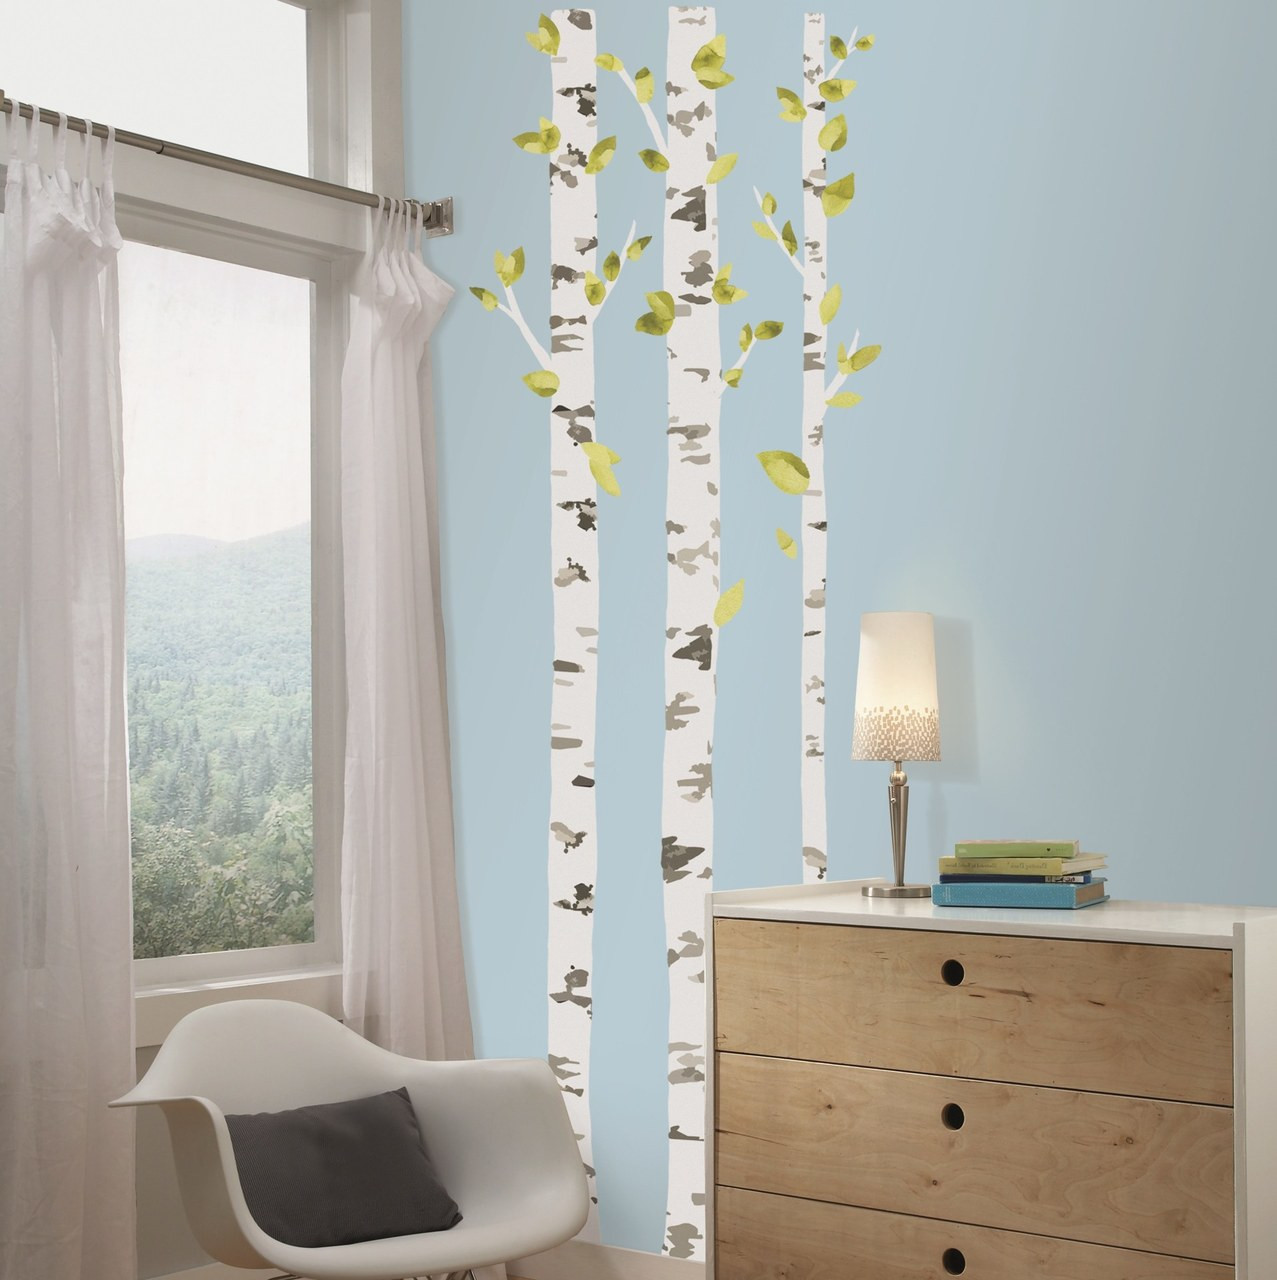 Nature meets the walls in your home with these Birch Trees Peel and Stick Giant Wall Decals from RoomMates!